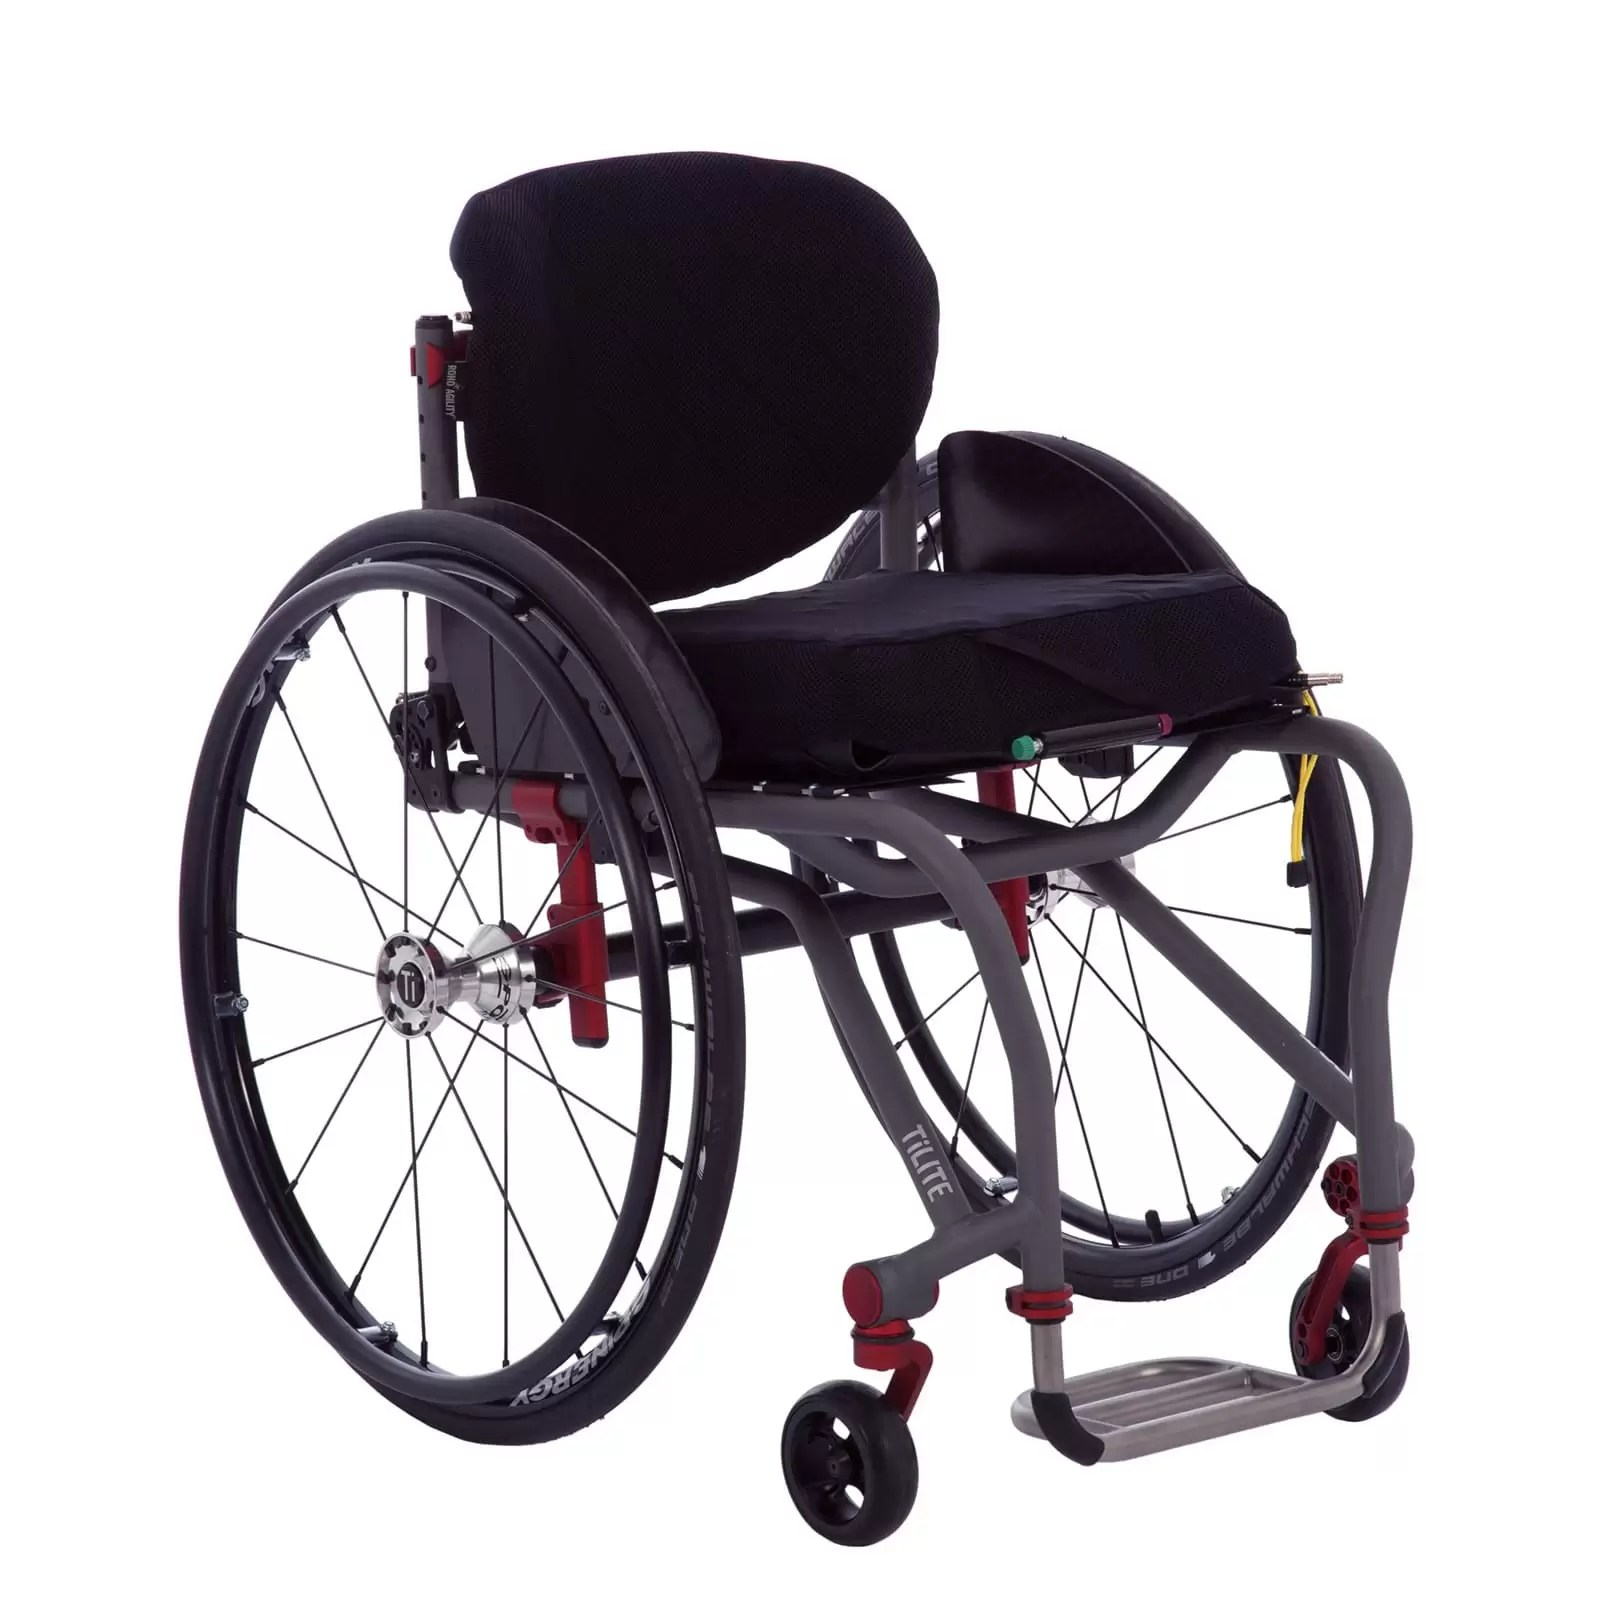 wheelchair parts canada best gaming chair reddit aero t permobil